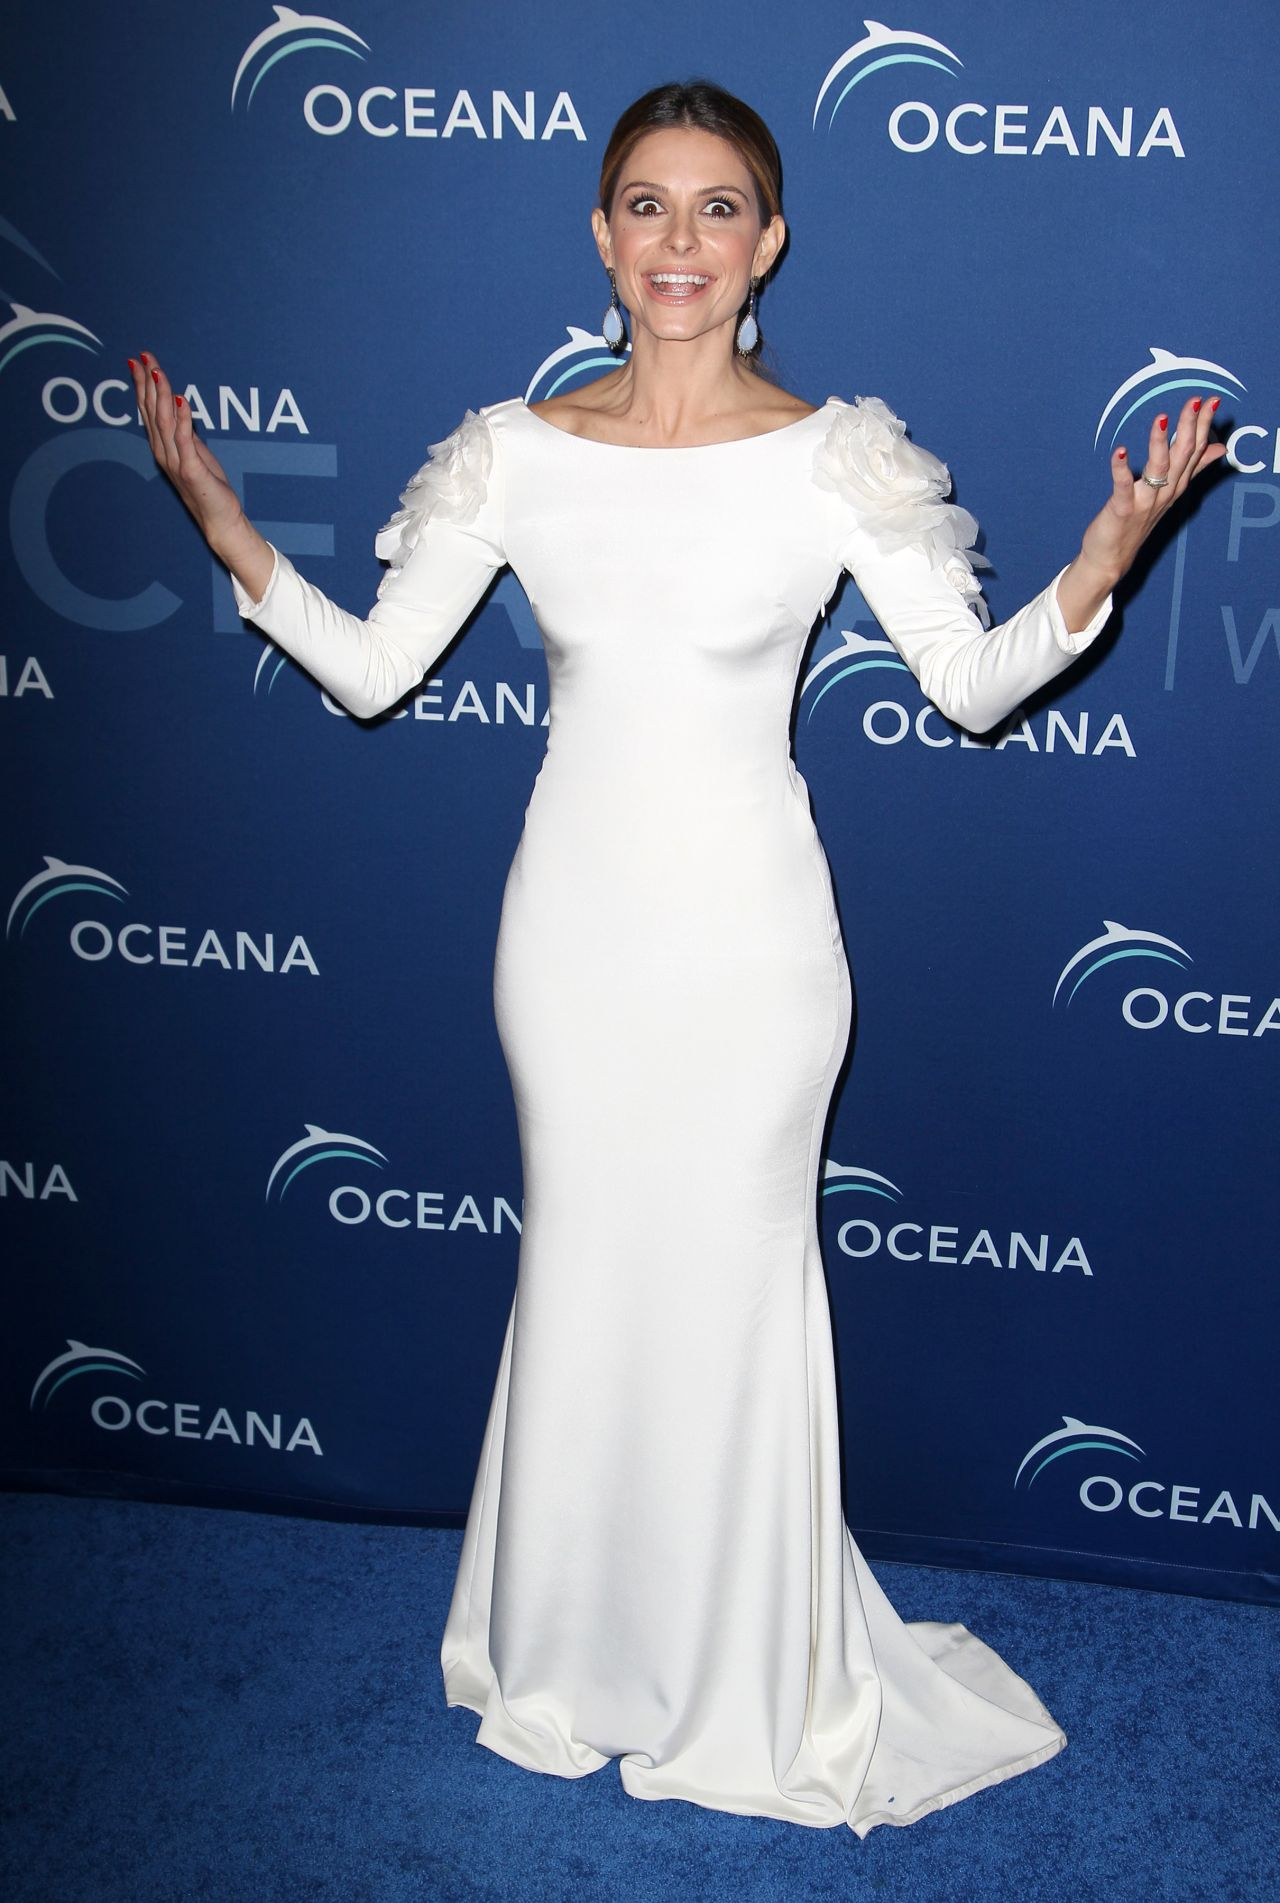 Maria Menounos at 2013 Oceana